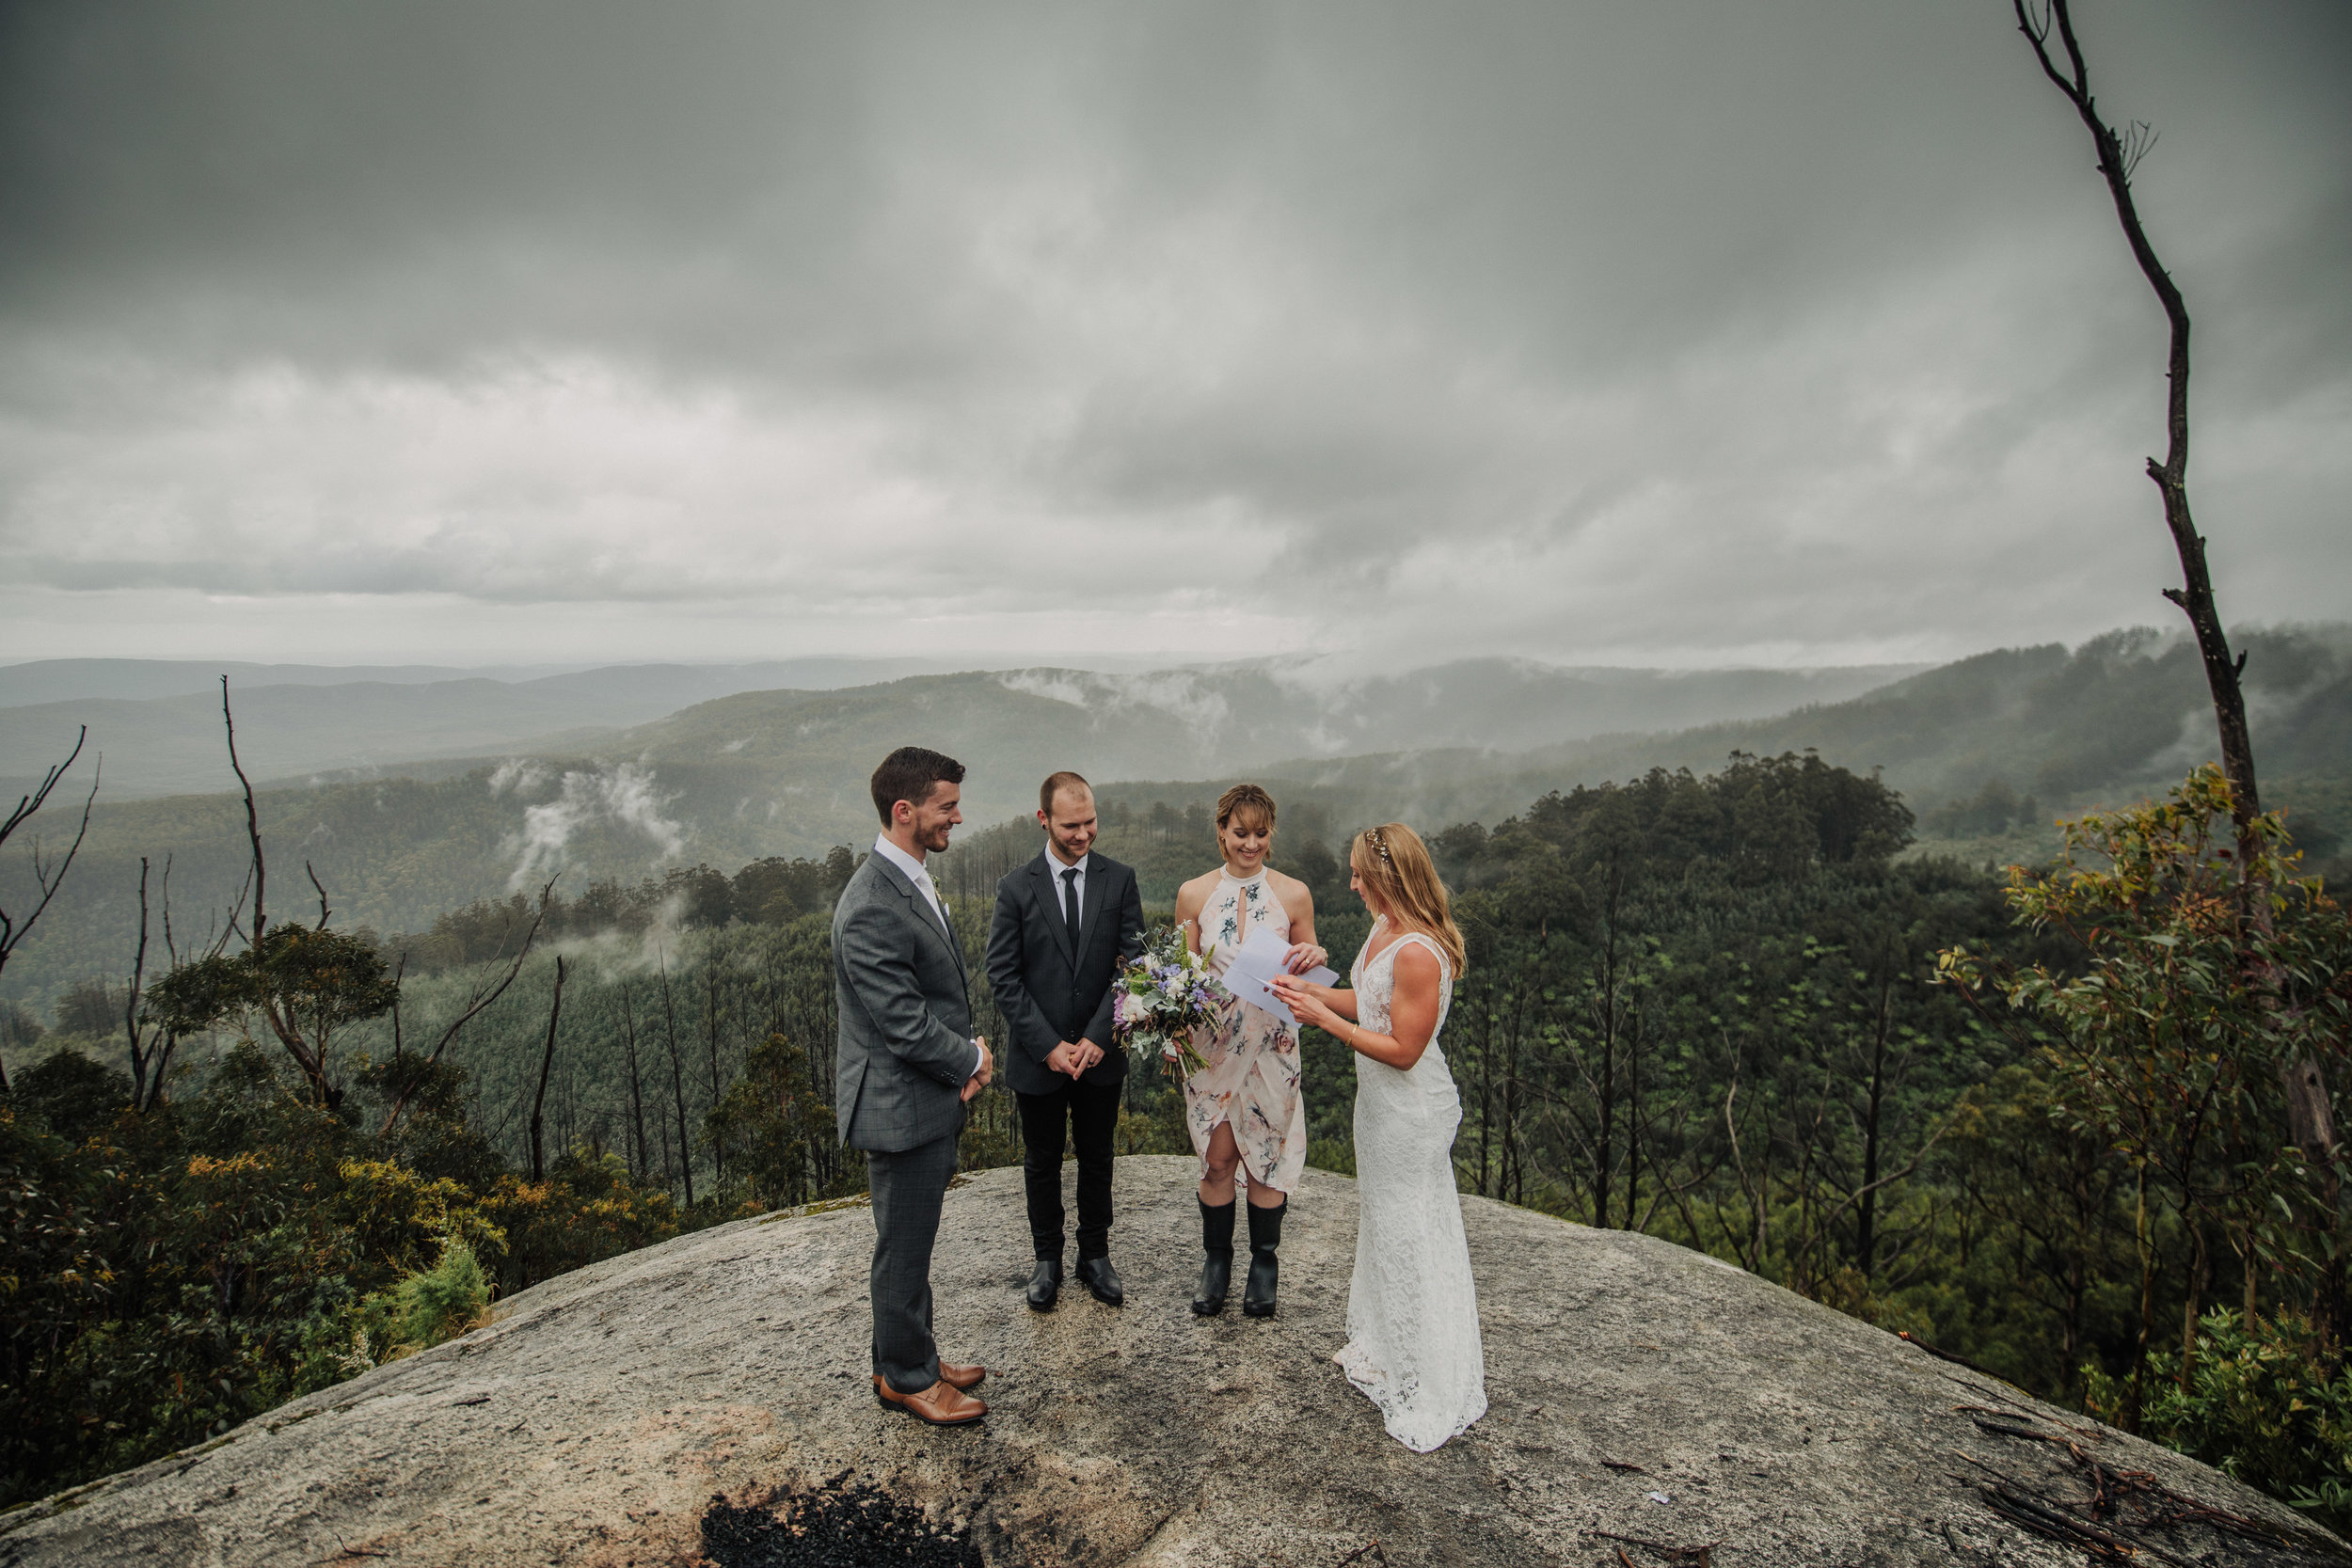 View Sonya & Jake's Intimate Mountain Top Elopement